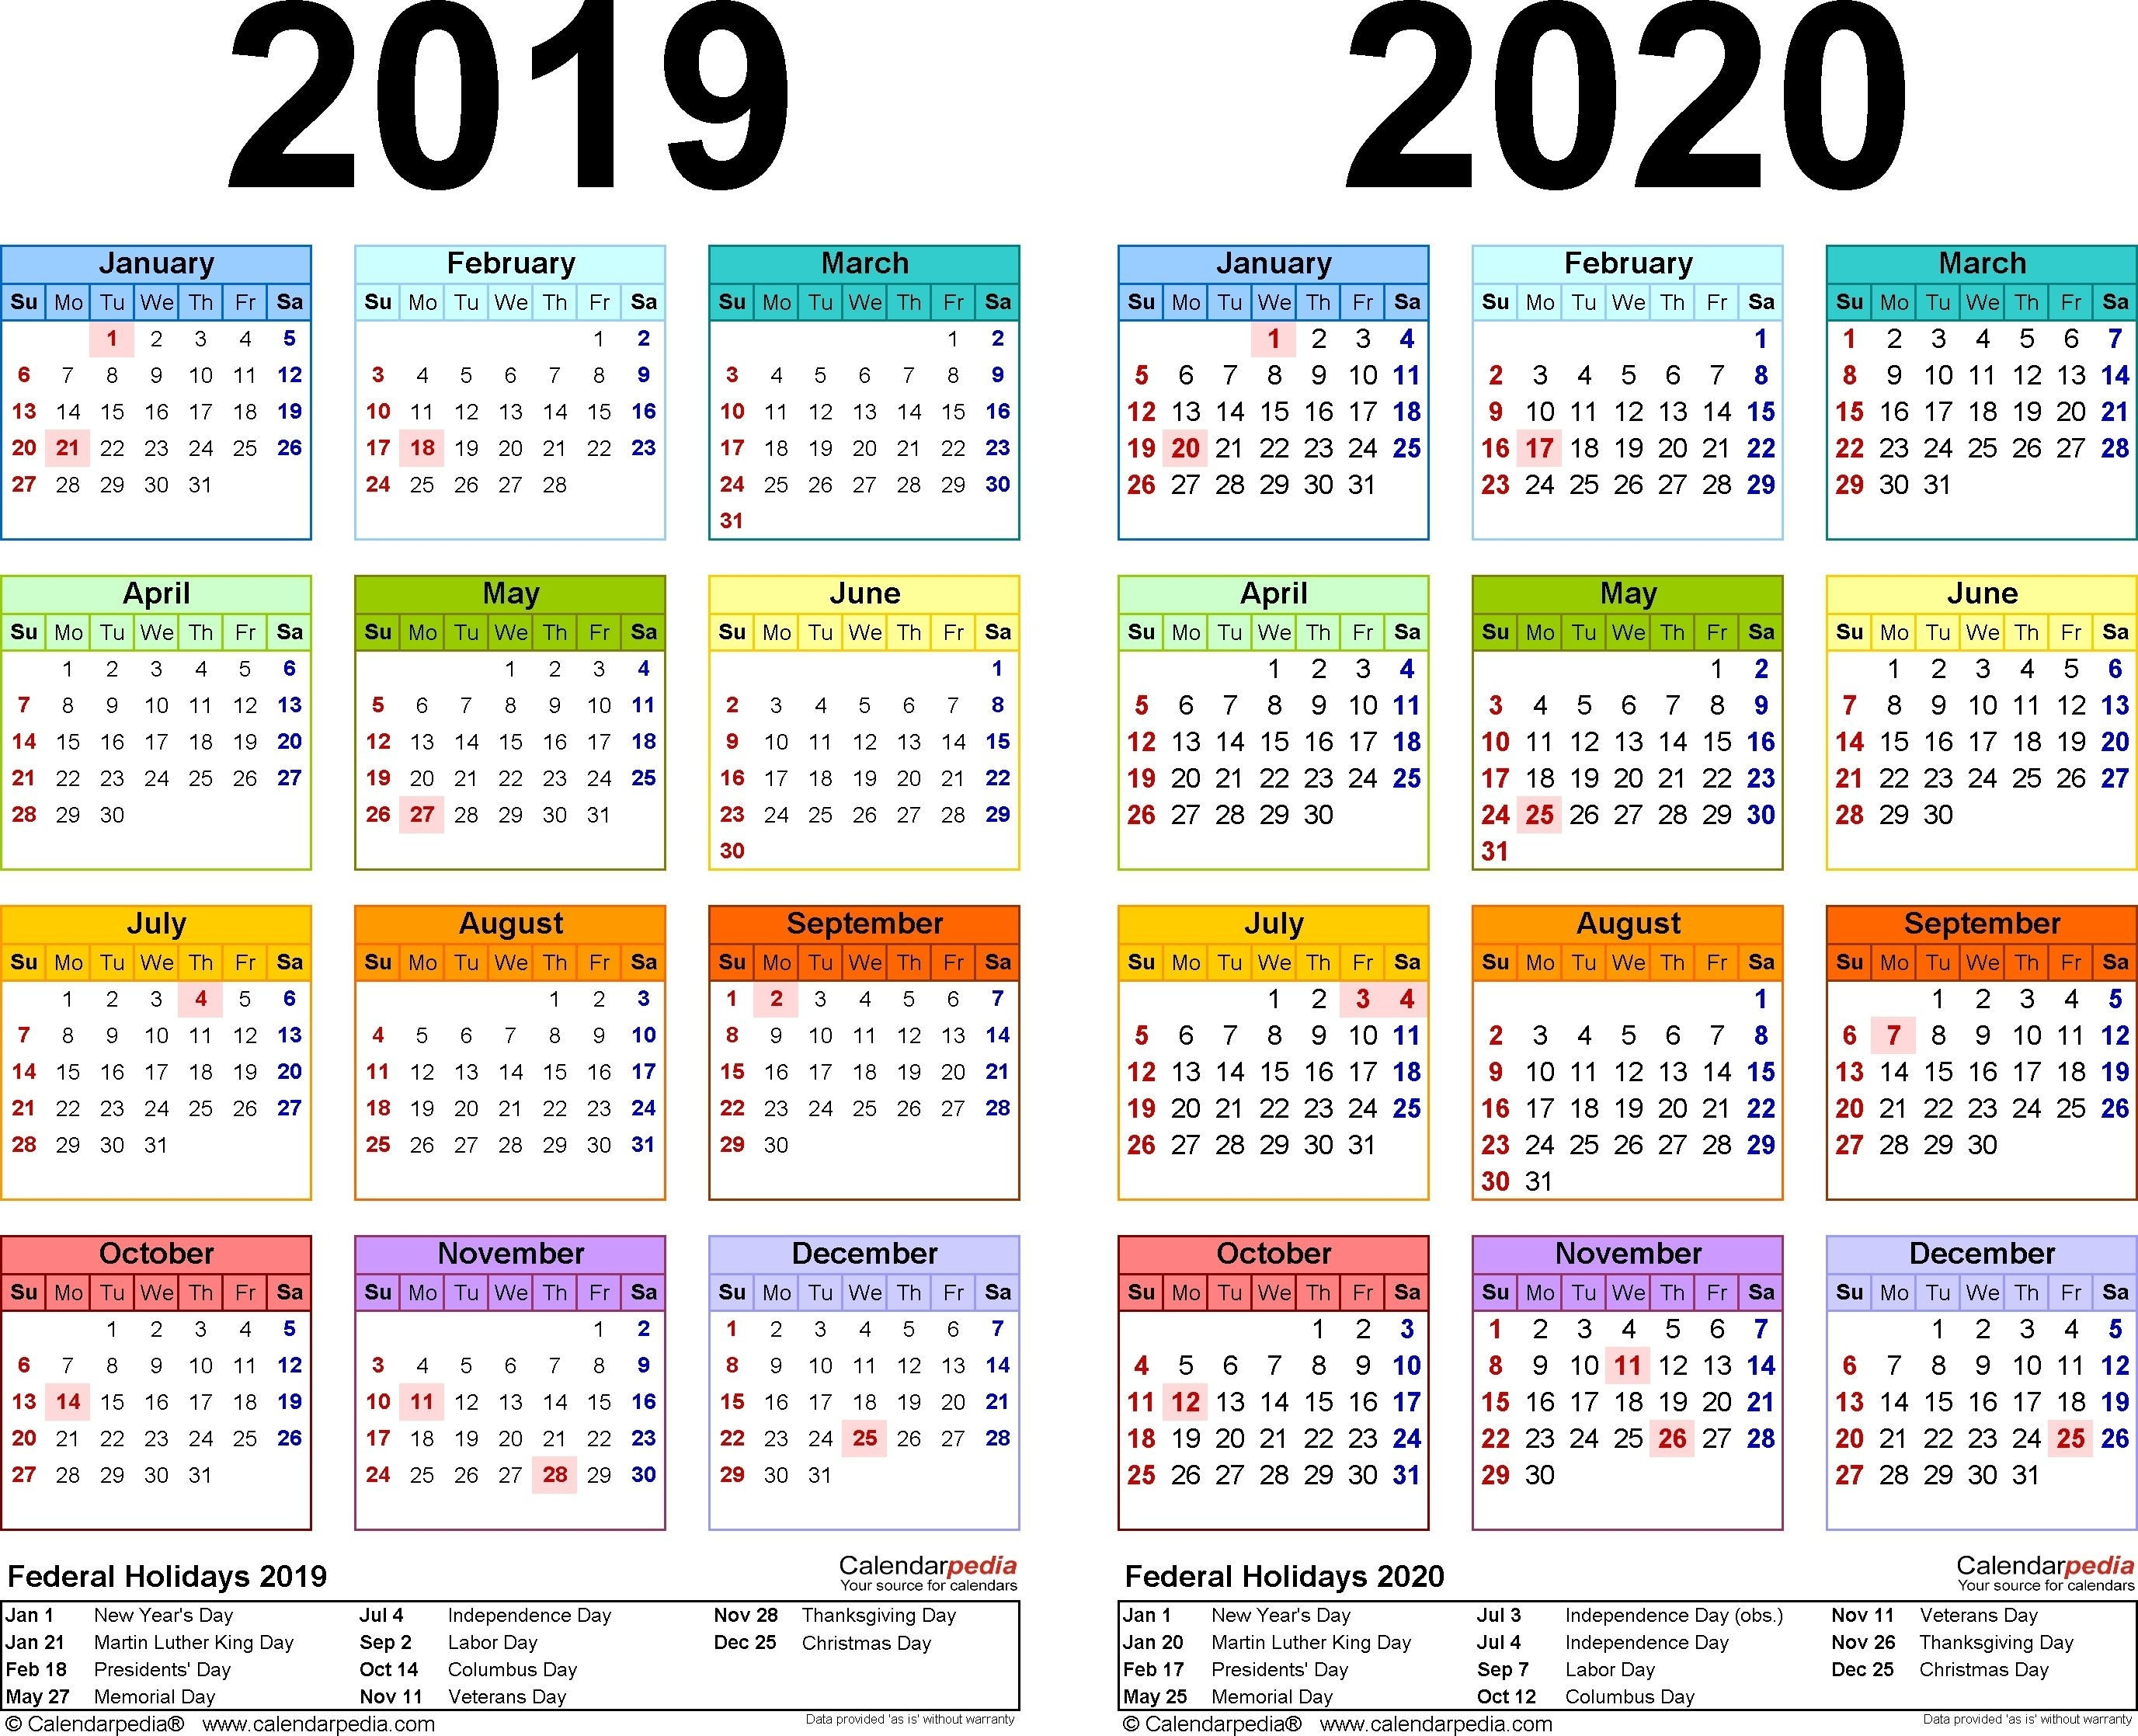 2019-2020 Calendar - Free Printable Two-Year Excel Calendars inside More Calendar Templates: 2019 2020 Web Calendar